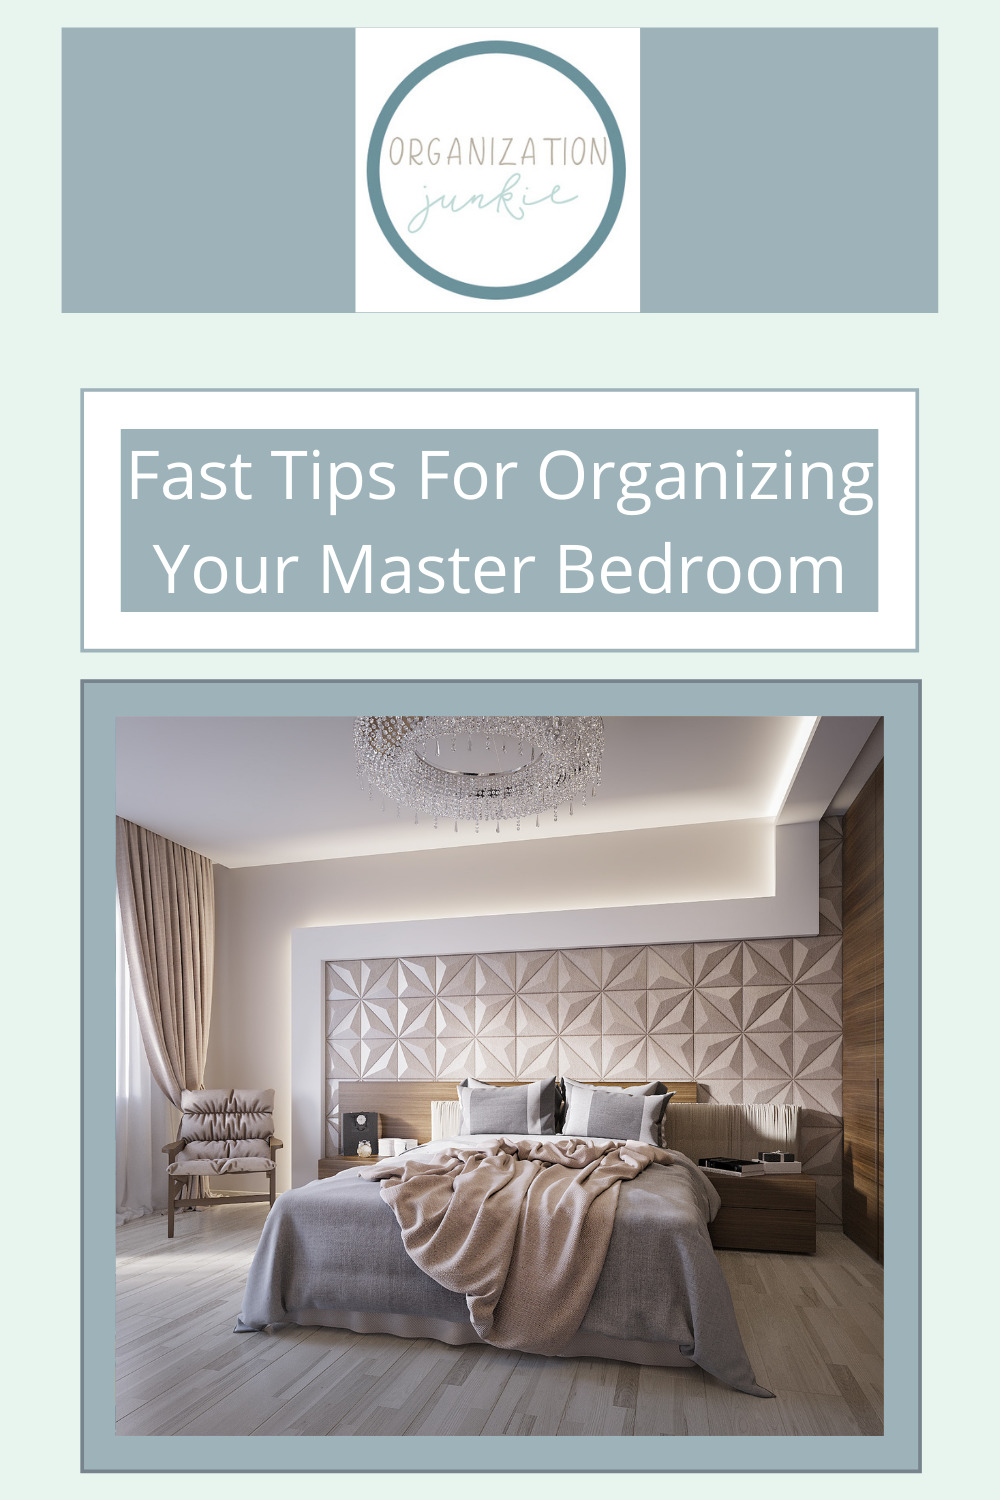 Organizationjunkie.com is stacked with creative ideas for keeping a clean and organized space. Find out how you can wipe out clutter in an instant. These clever ideas will have your master bedroom totally organized in no time!